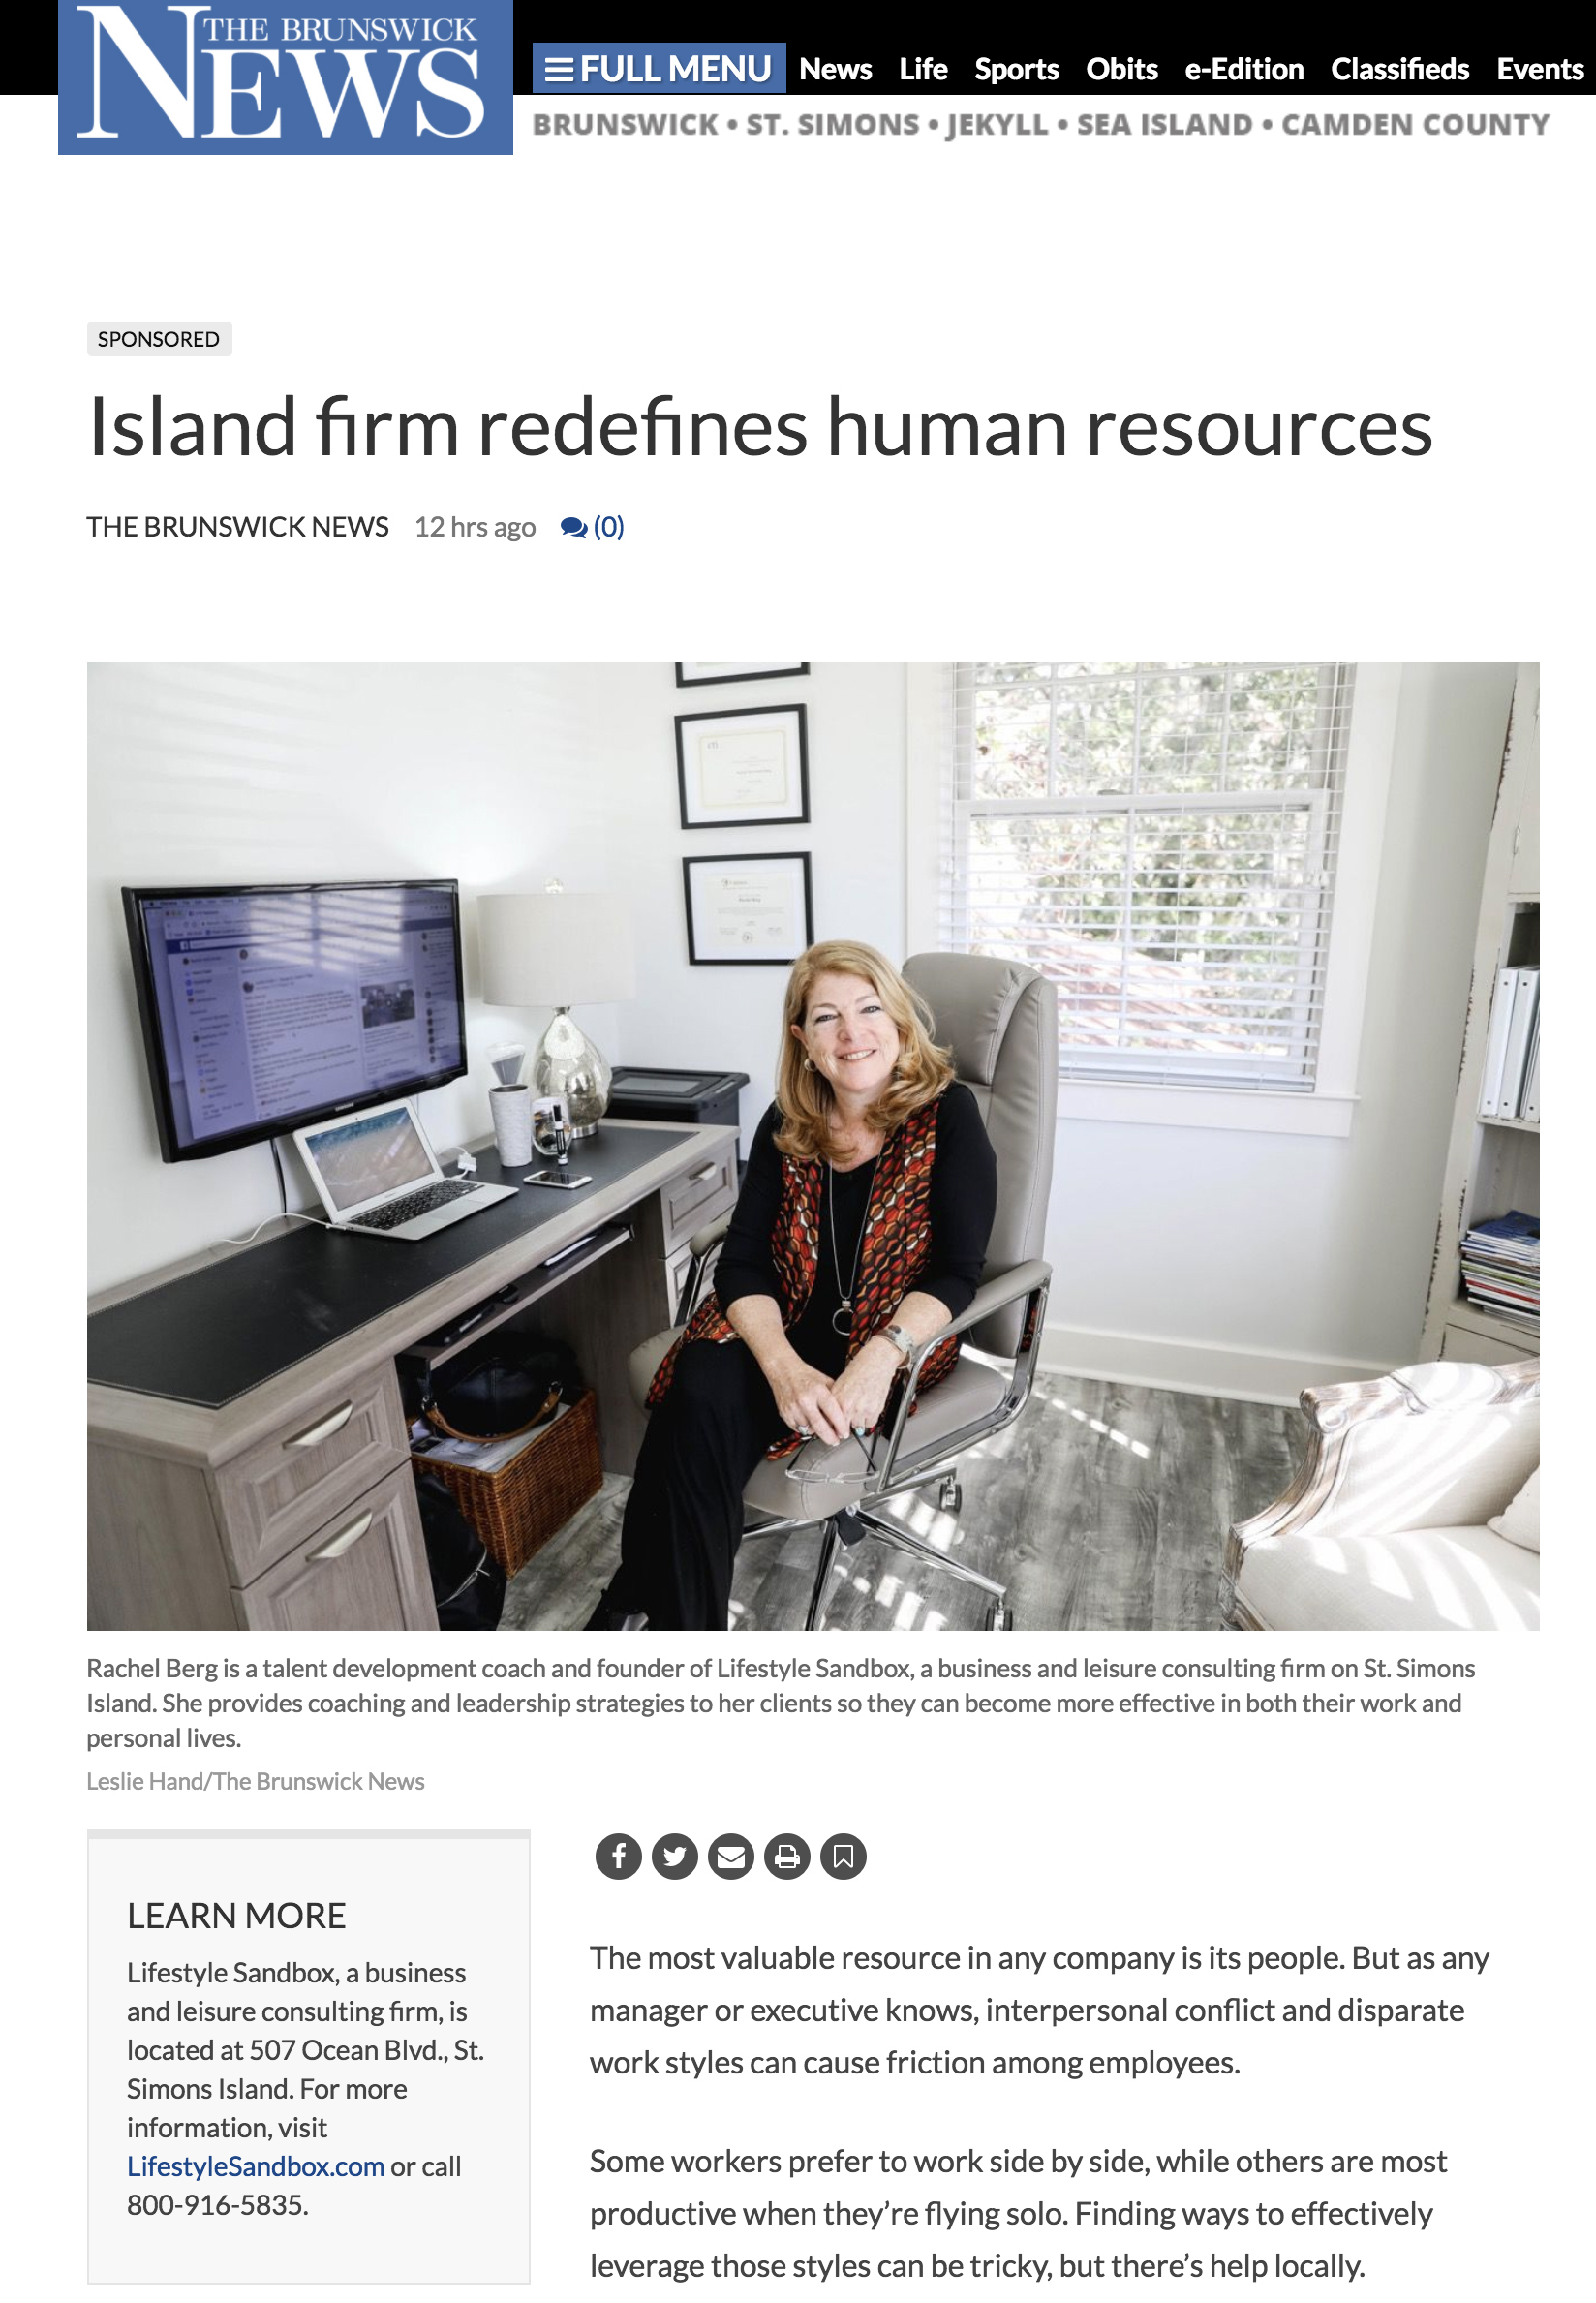 Rachel Berg of Lifestyle Sandbox sits at her computer in her office